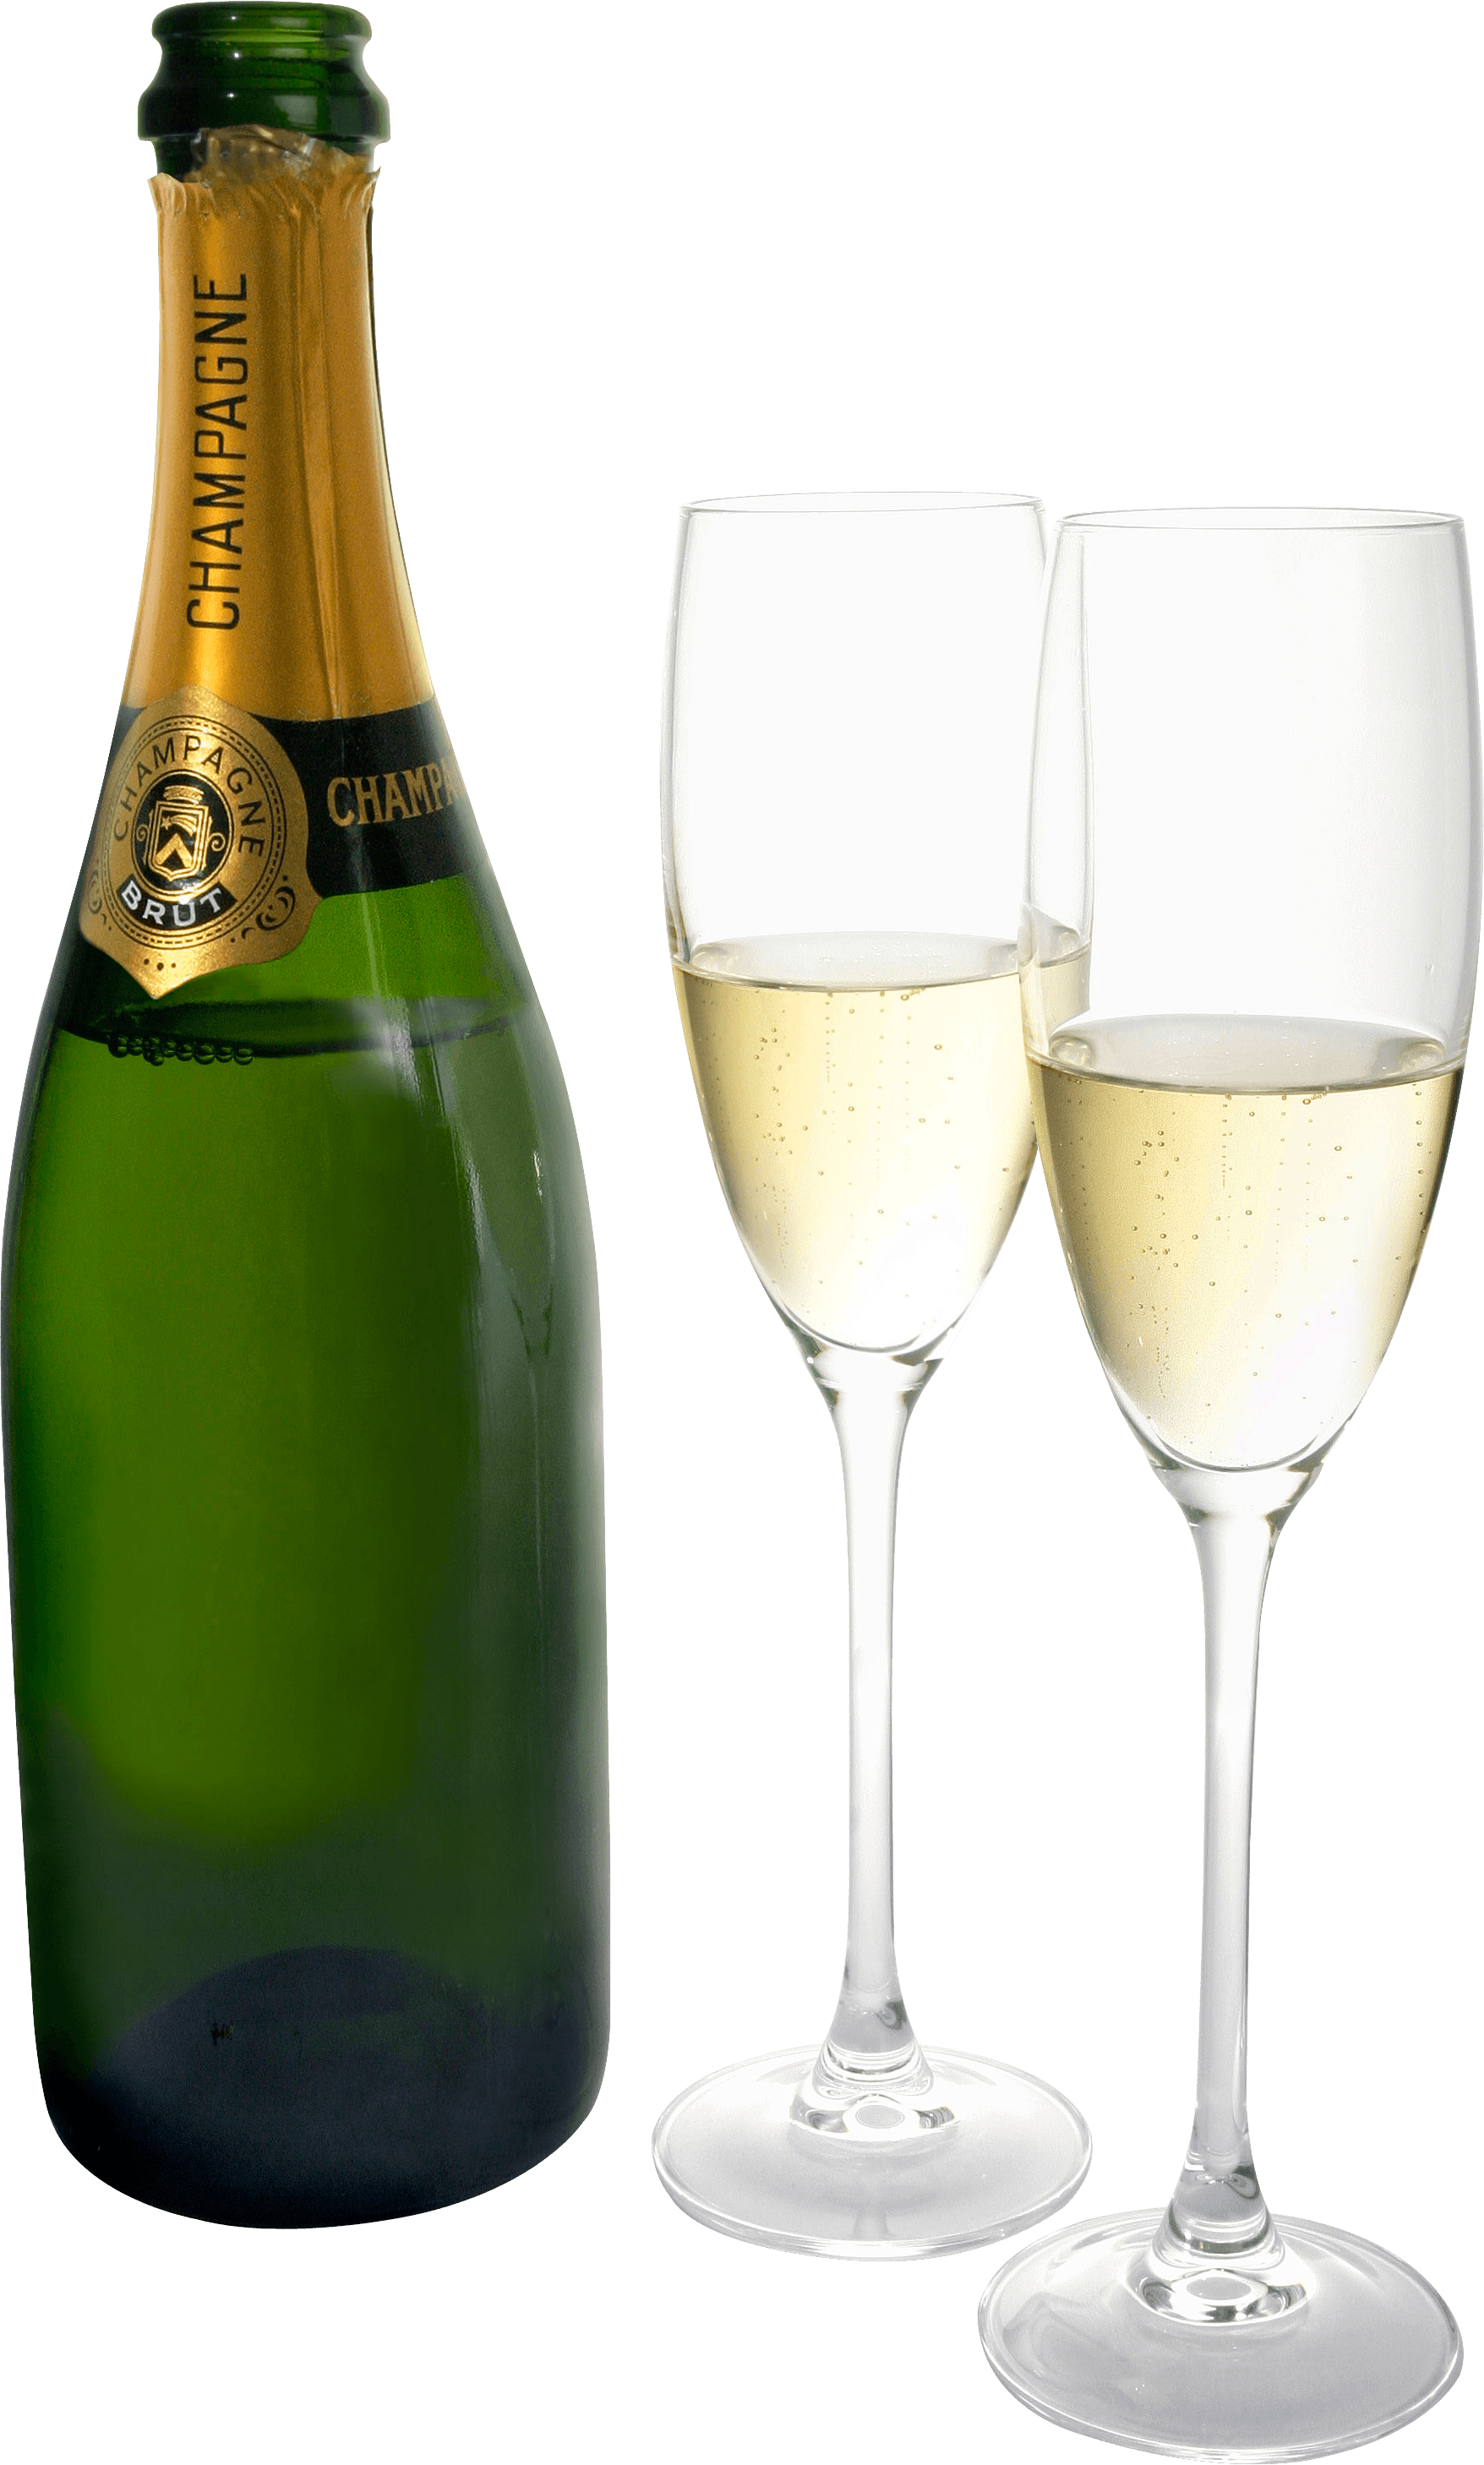 banner library stock Champagne glasses clipart no background. Two bottle transparent png.